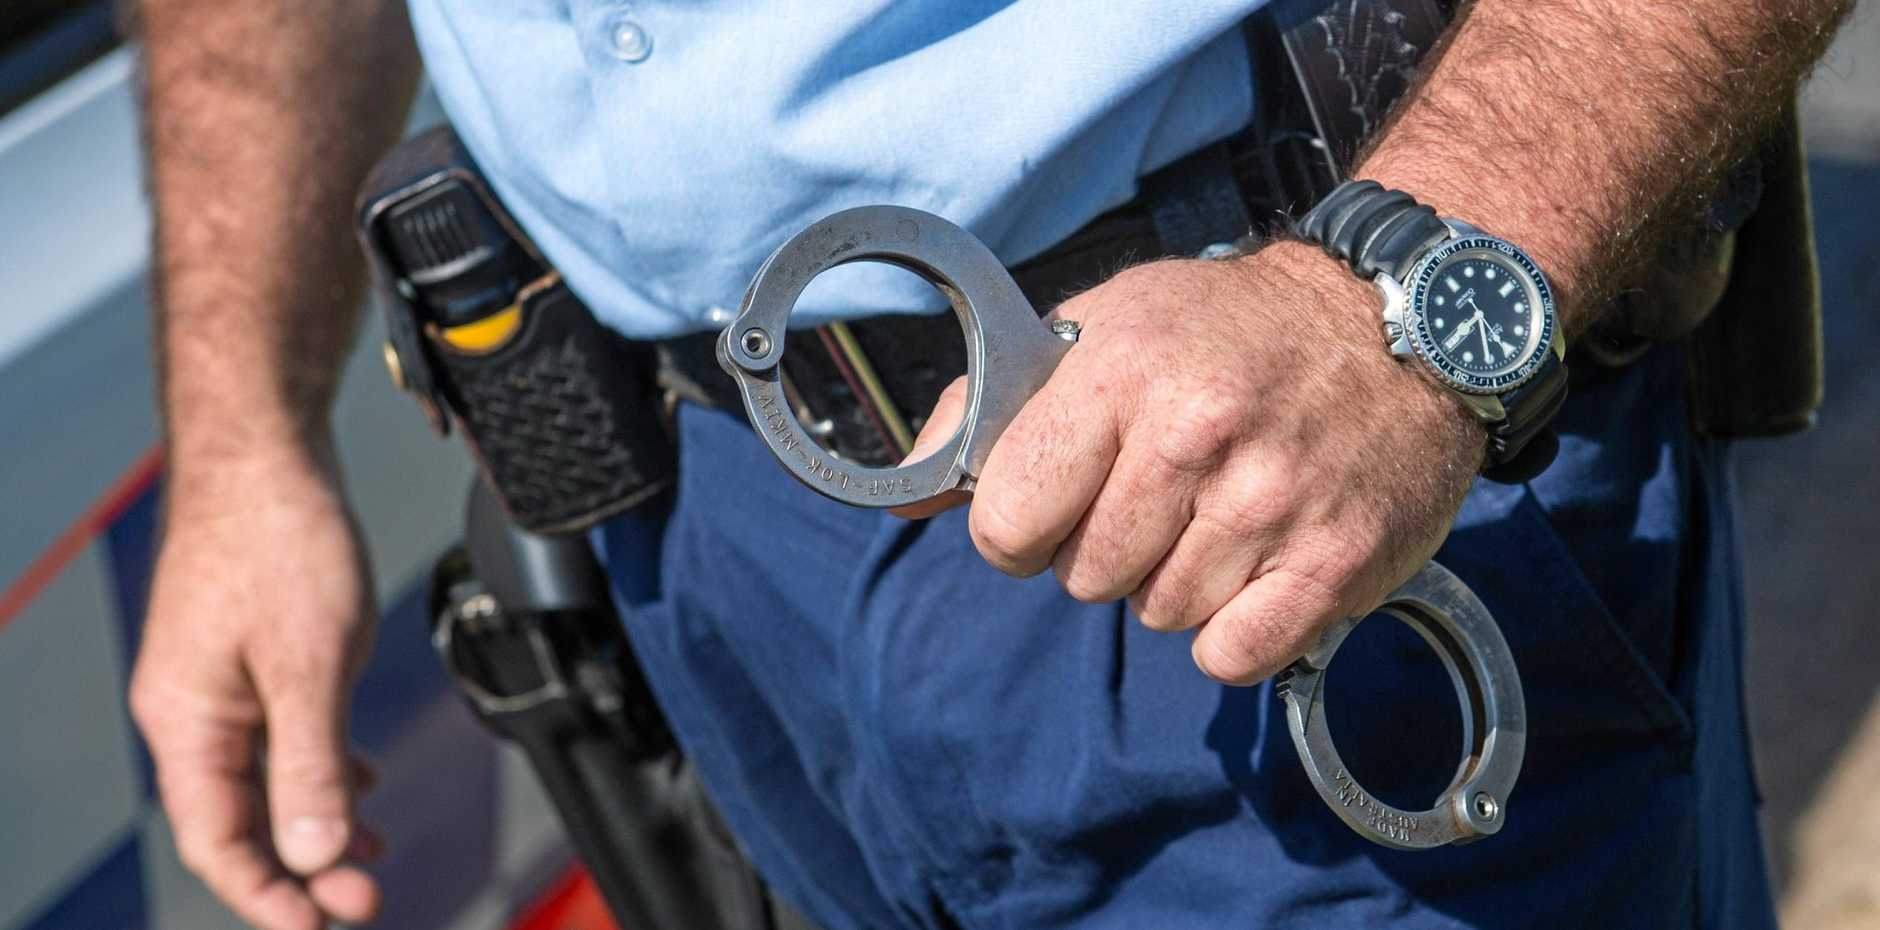 Police have charged a 16-year-old boy over an alleged unlawful wounding at Nambour on November 2.